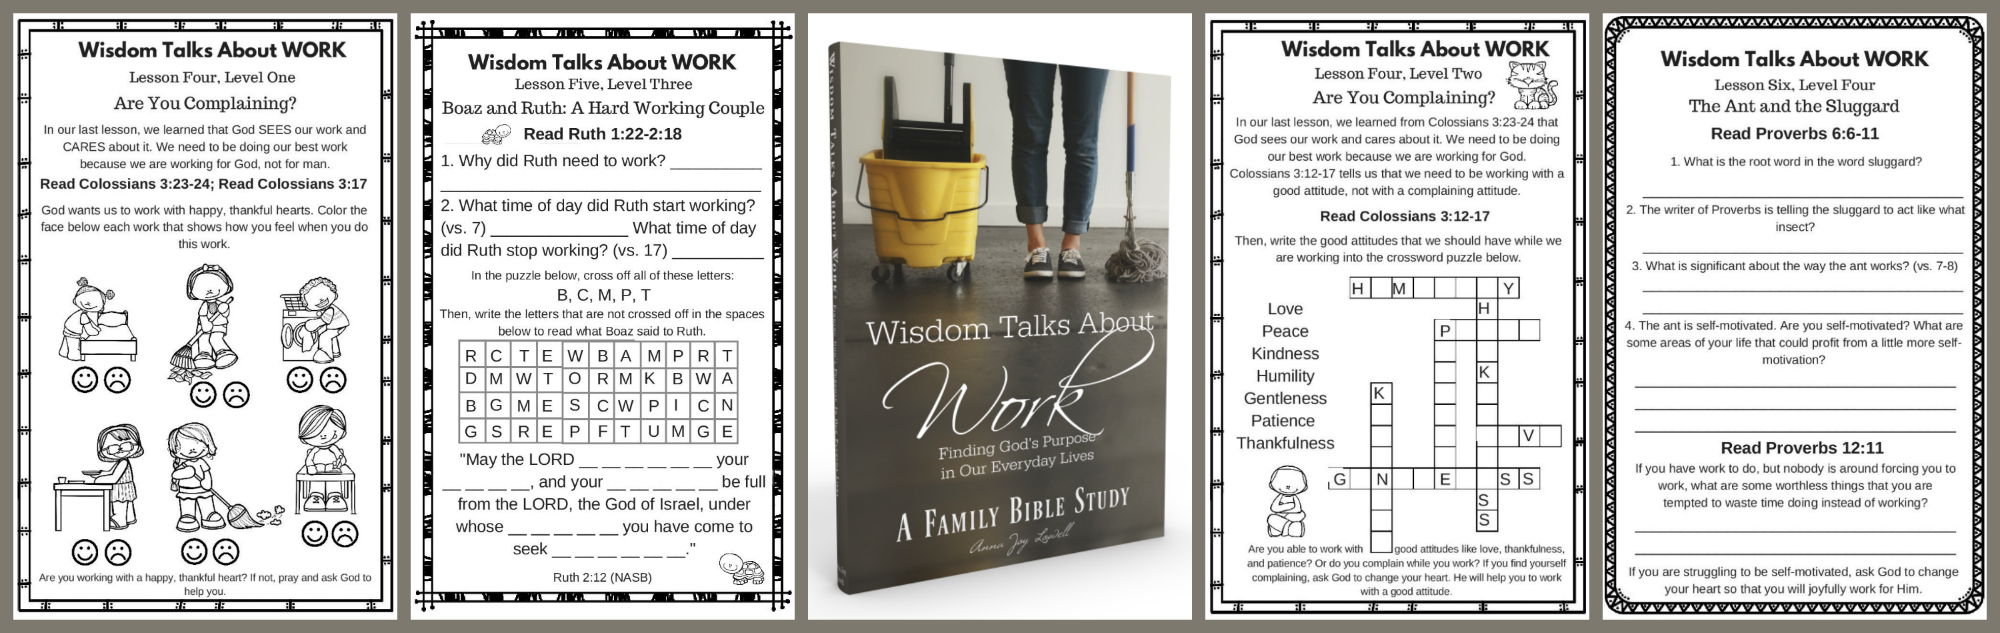 Wisdom Talks About Work: Finding God's Purpose In Our Everyday Lives